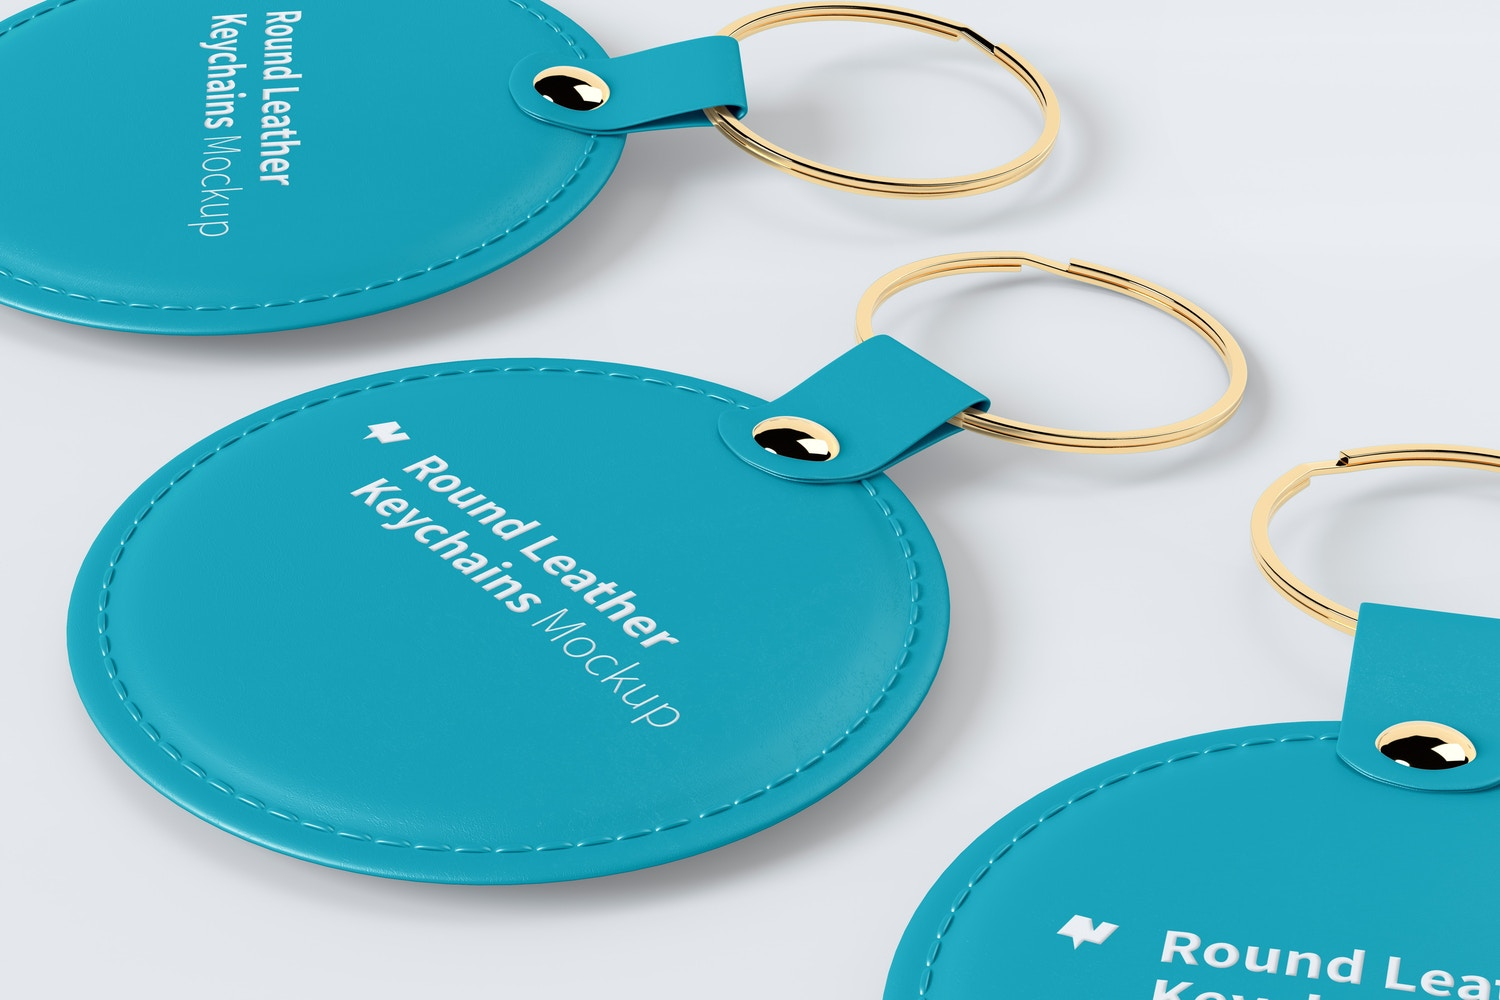 Round Leather Keychains Mockup, Right View